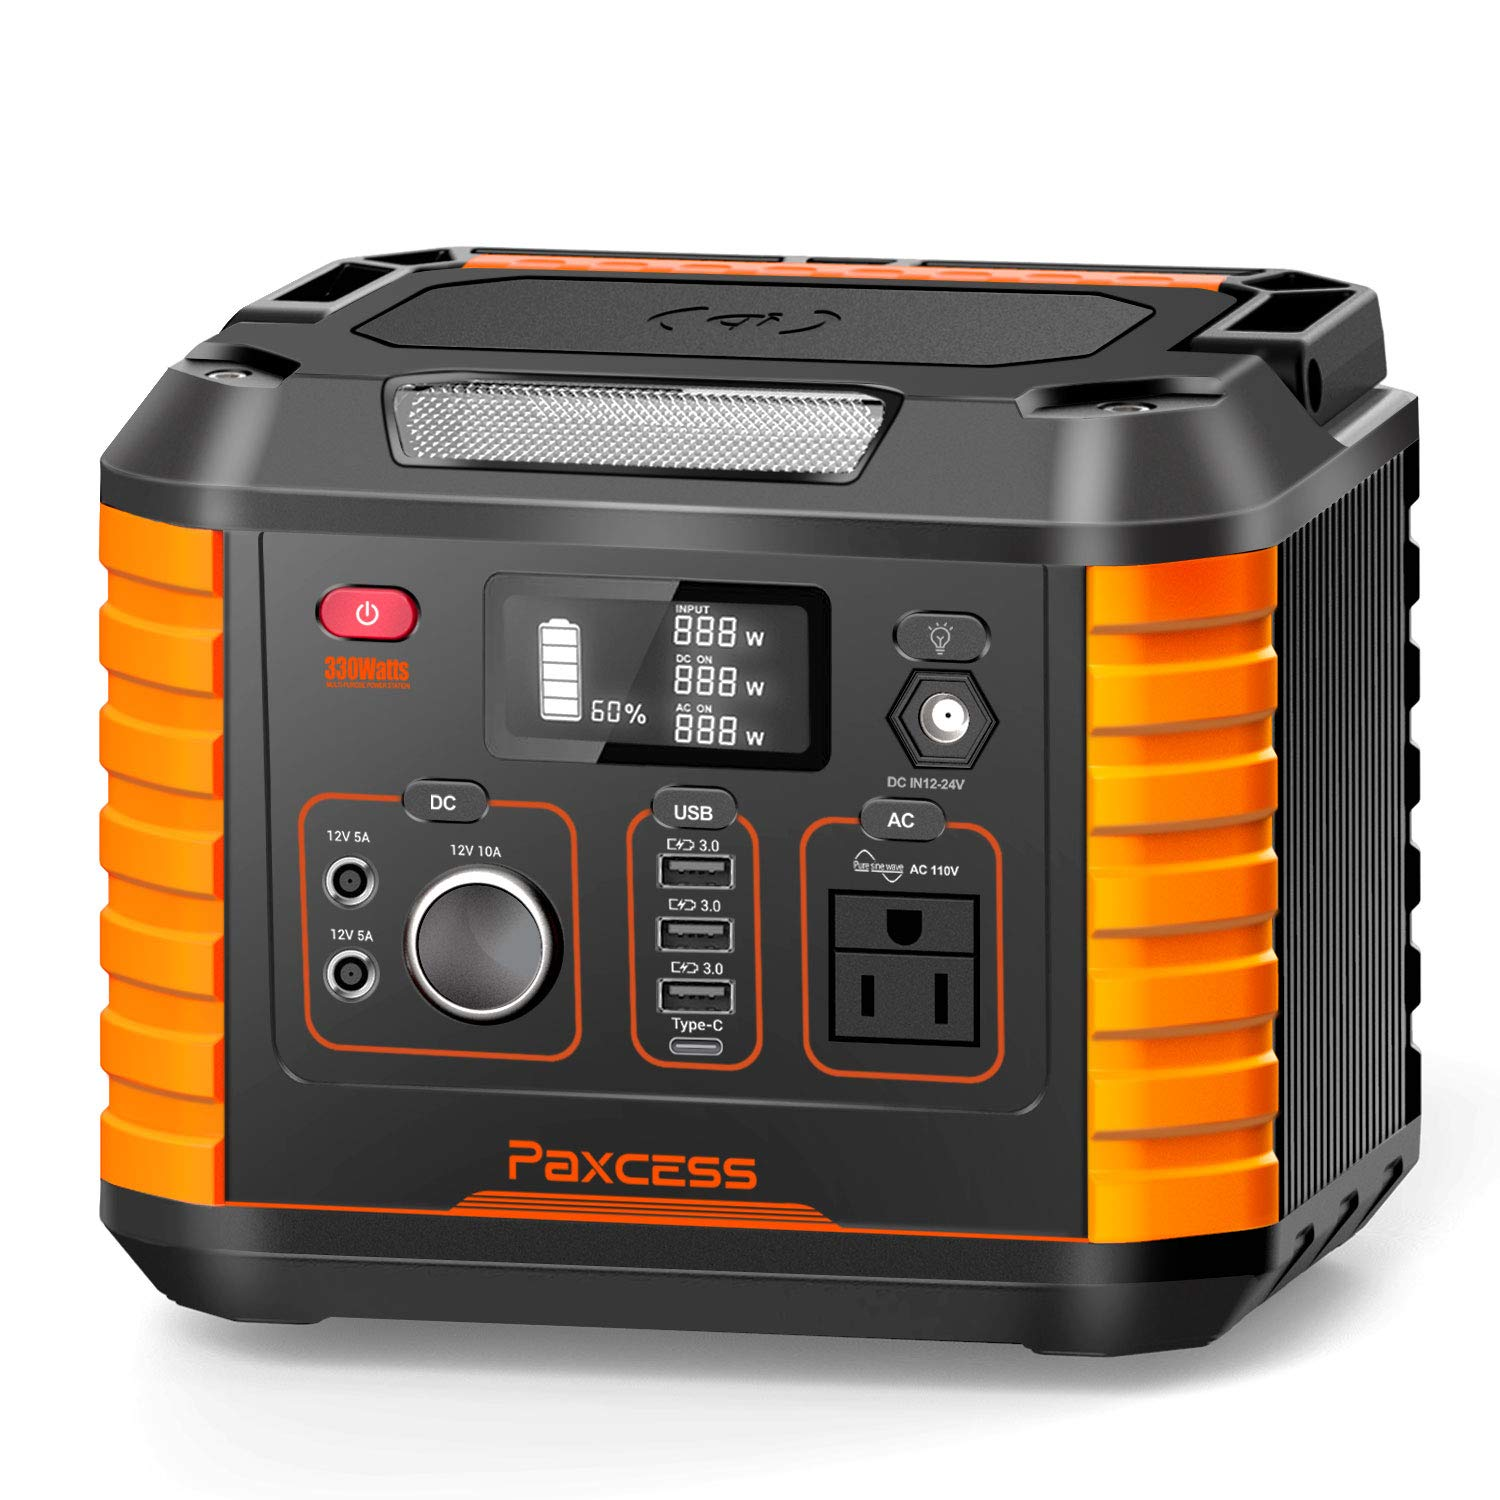 Portable Camping Generator, 330W/78000mAh Portable Power Station, CPAP Battery Power Supply,Solar Generator with110V AC, 12V/10A DC,QC3.0 &TypeC, Wireless Charger,SOS Light for Travel Home Emergency by PAXCESS